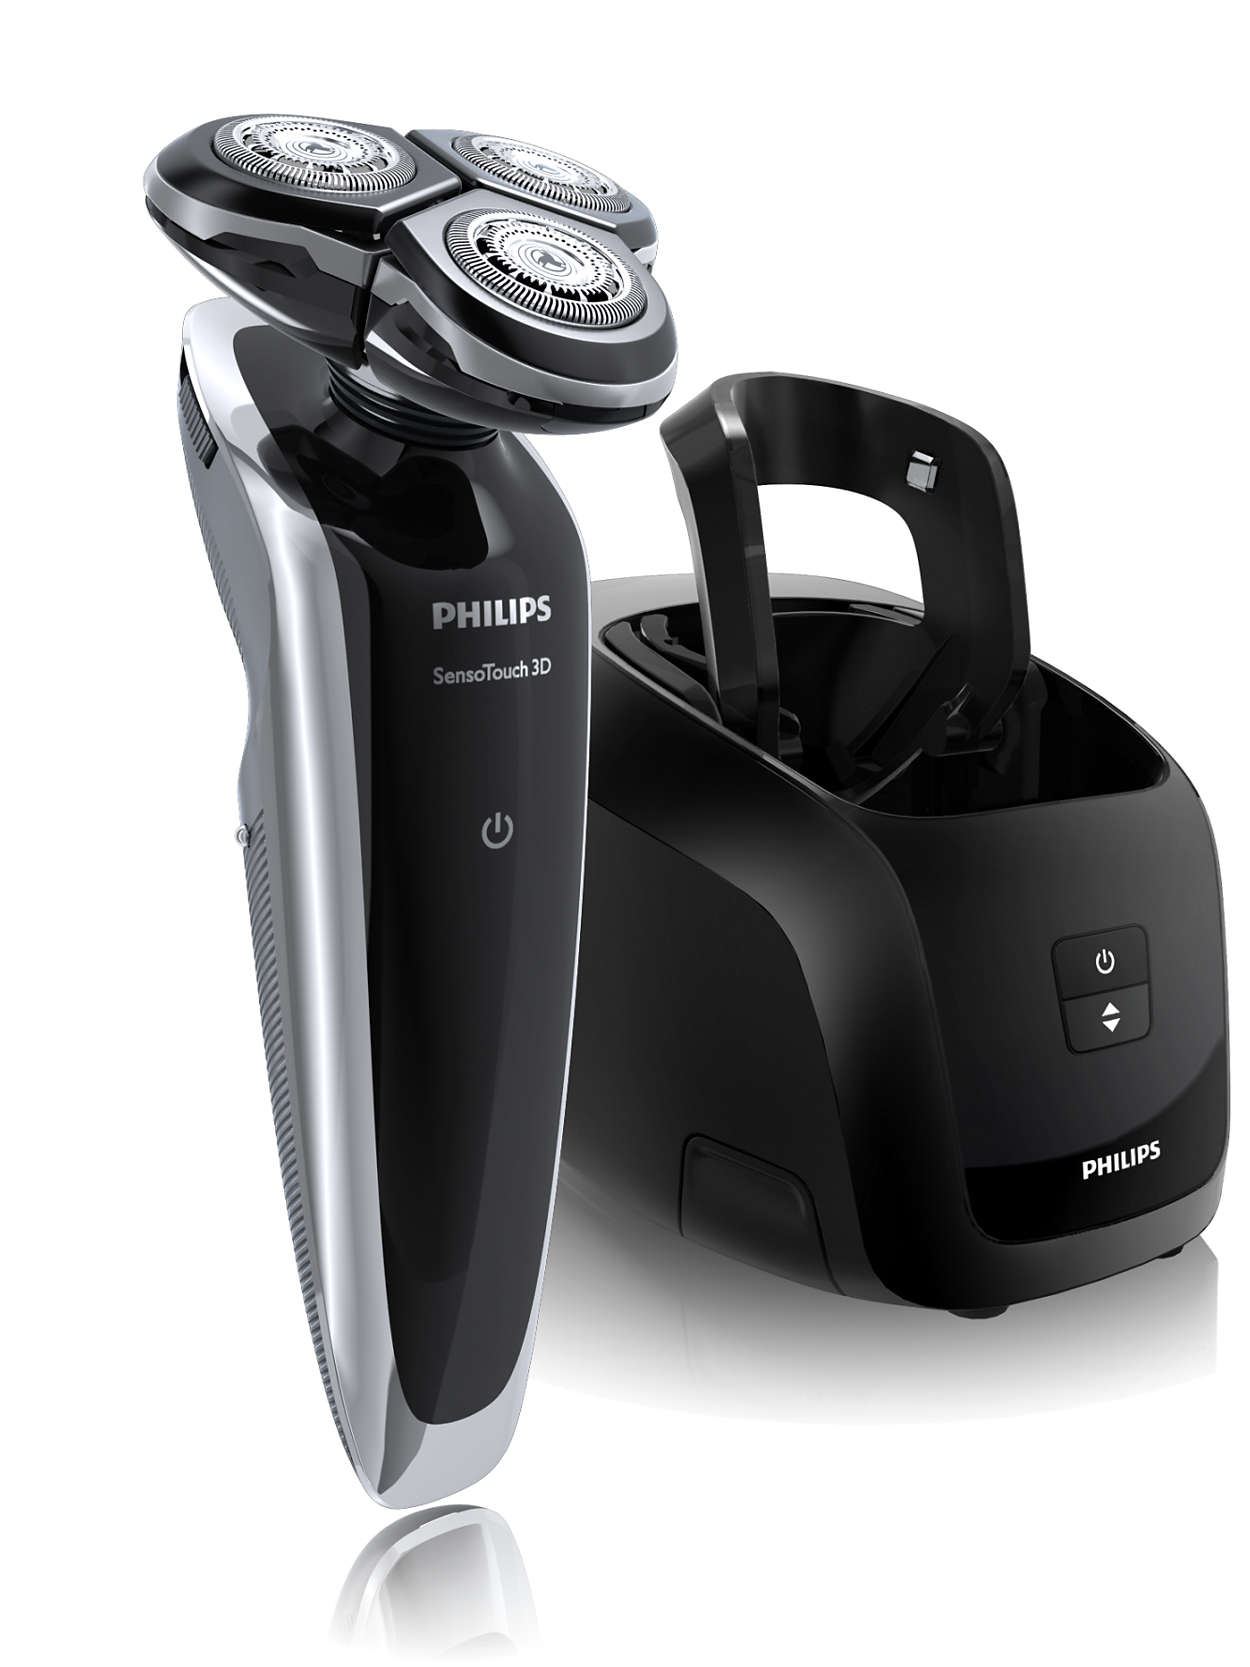 shaver series 9000 sensotouch rasoir lectrique 100 tanche rq1290 23 philips. Black Bedroom Furniture Sets. Home Design Ideas